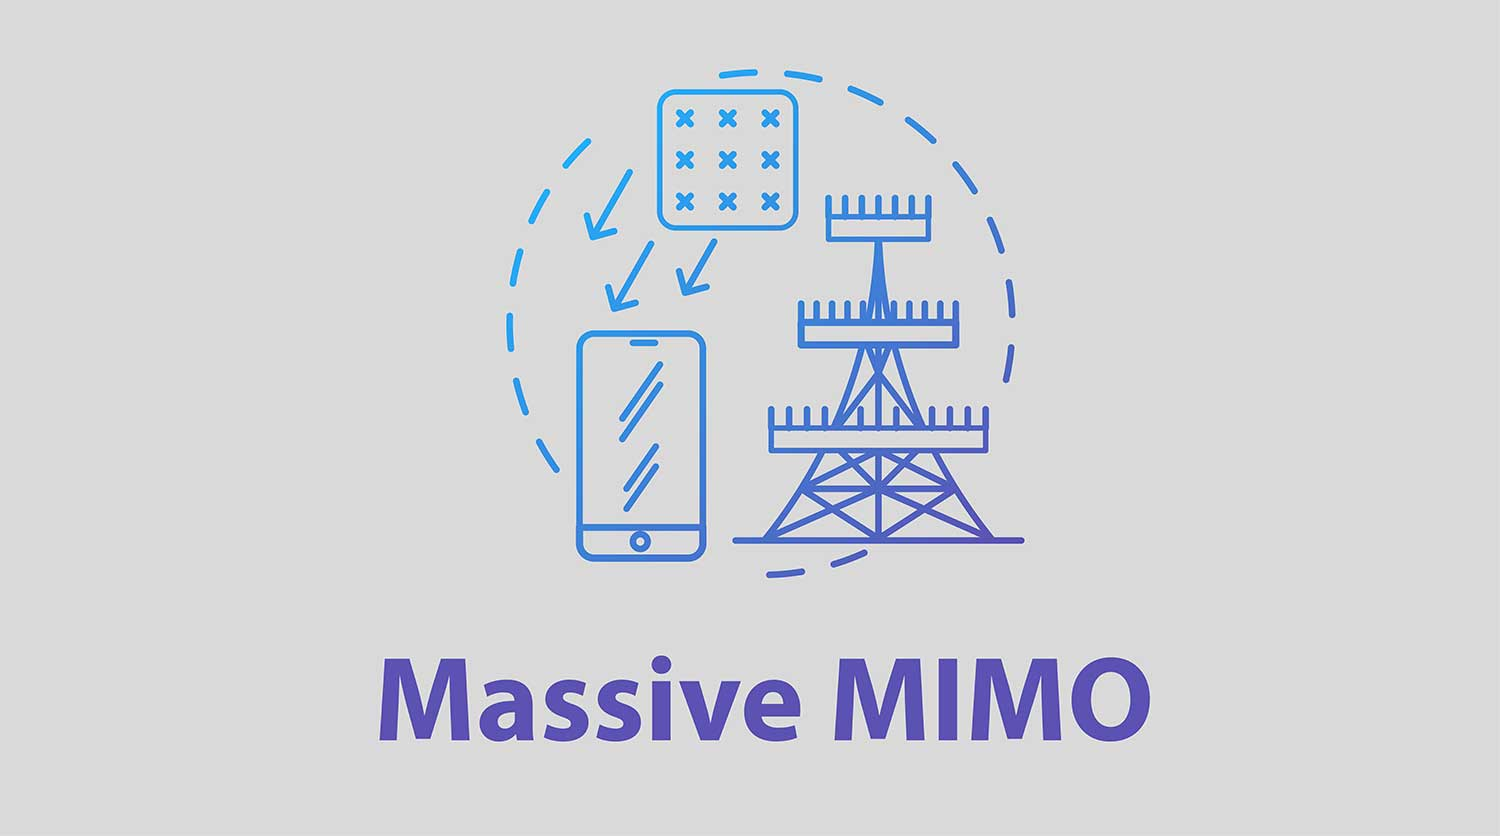 5G TDD & Massive MIMO for 5G